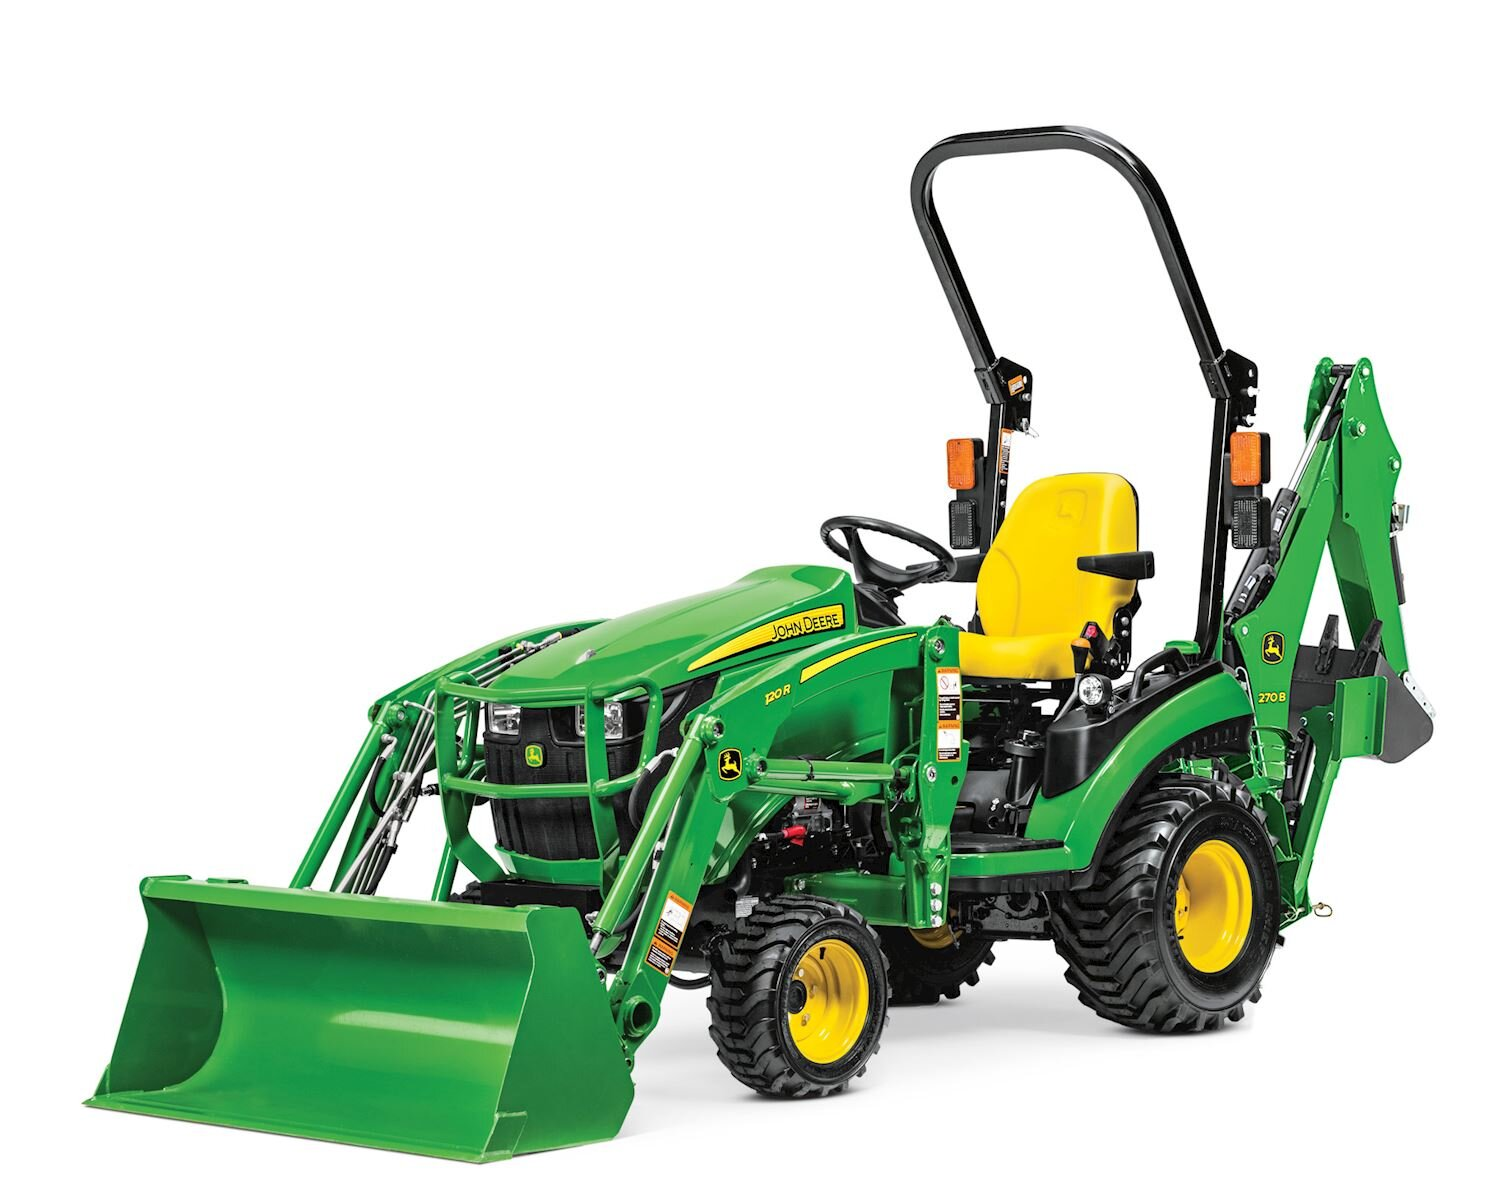 1025R with Backhoe.jpg